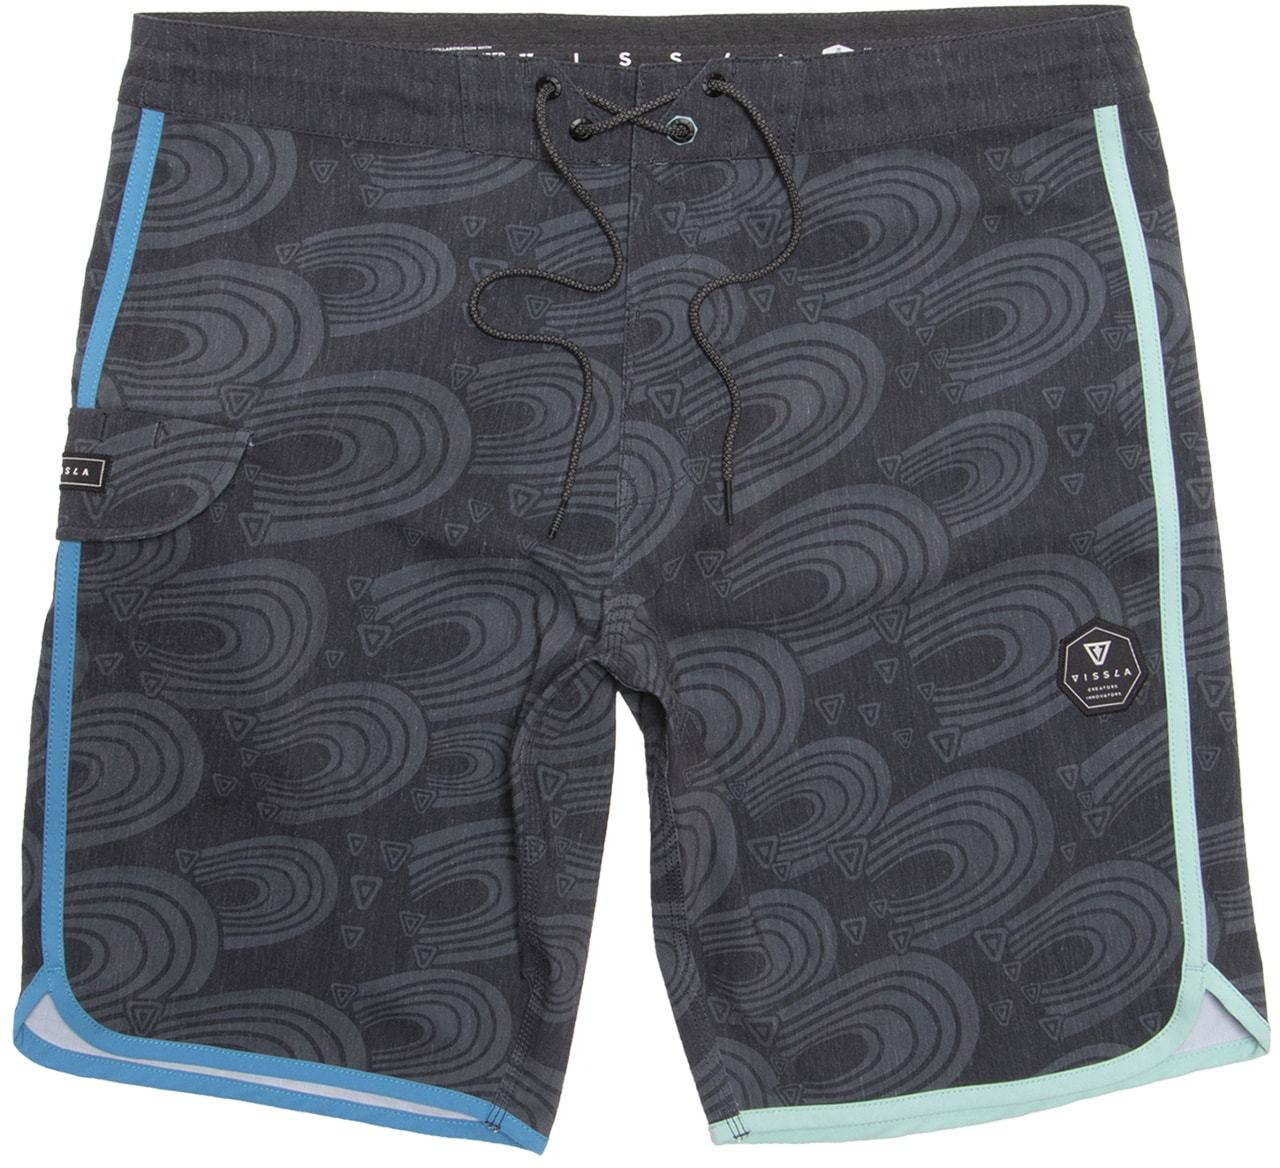 Washed 4-Way stretch boardshorts made with coconut fibers. All over printed boardshort with contrast fabric scallop binding side pocket tethered waistband and Vissla woven labels. Key Features of Vissla Surfrider 19.5in Boardshorts     Tethered Waistband  4-Way Stretch  Repreve  Upcycled Coco/Poly/Cotton Stretch  Cocotex  Triple Needle Stitching  HIGH H20 Repel  UPF 50 - $42.95